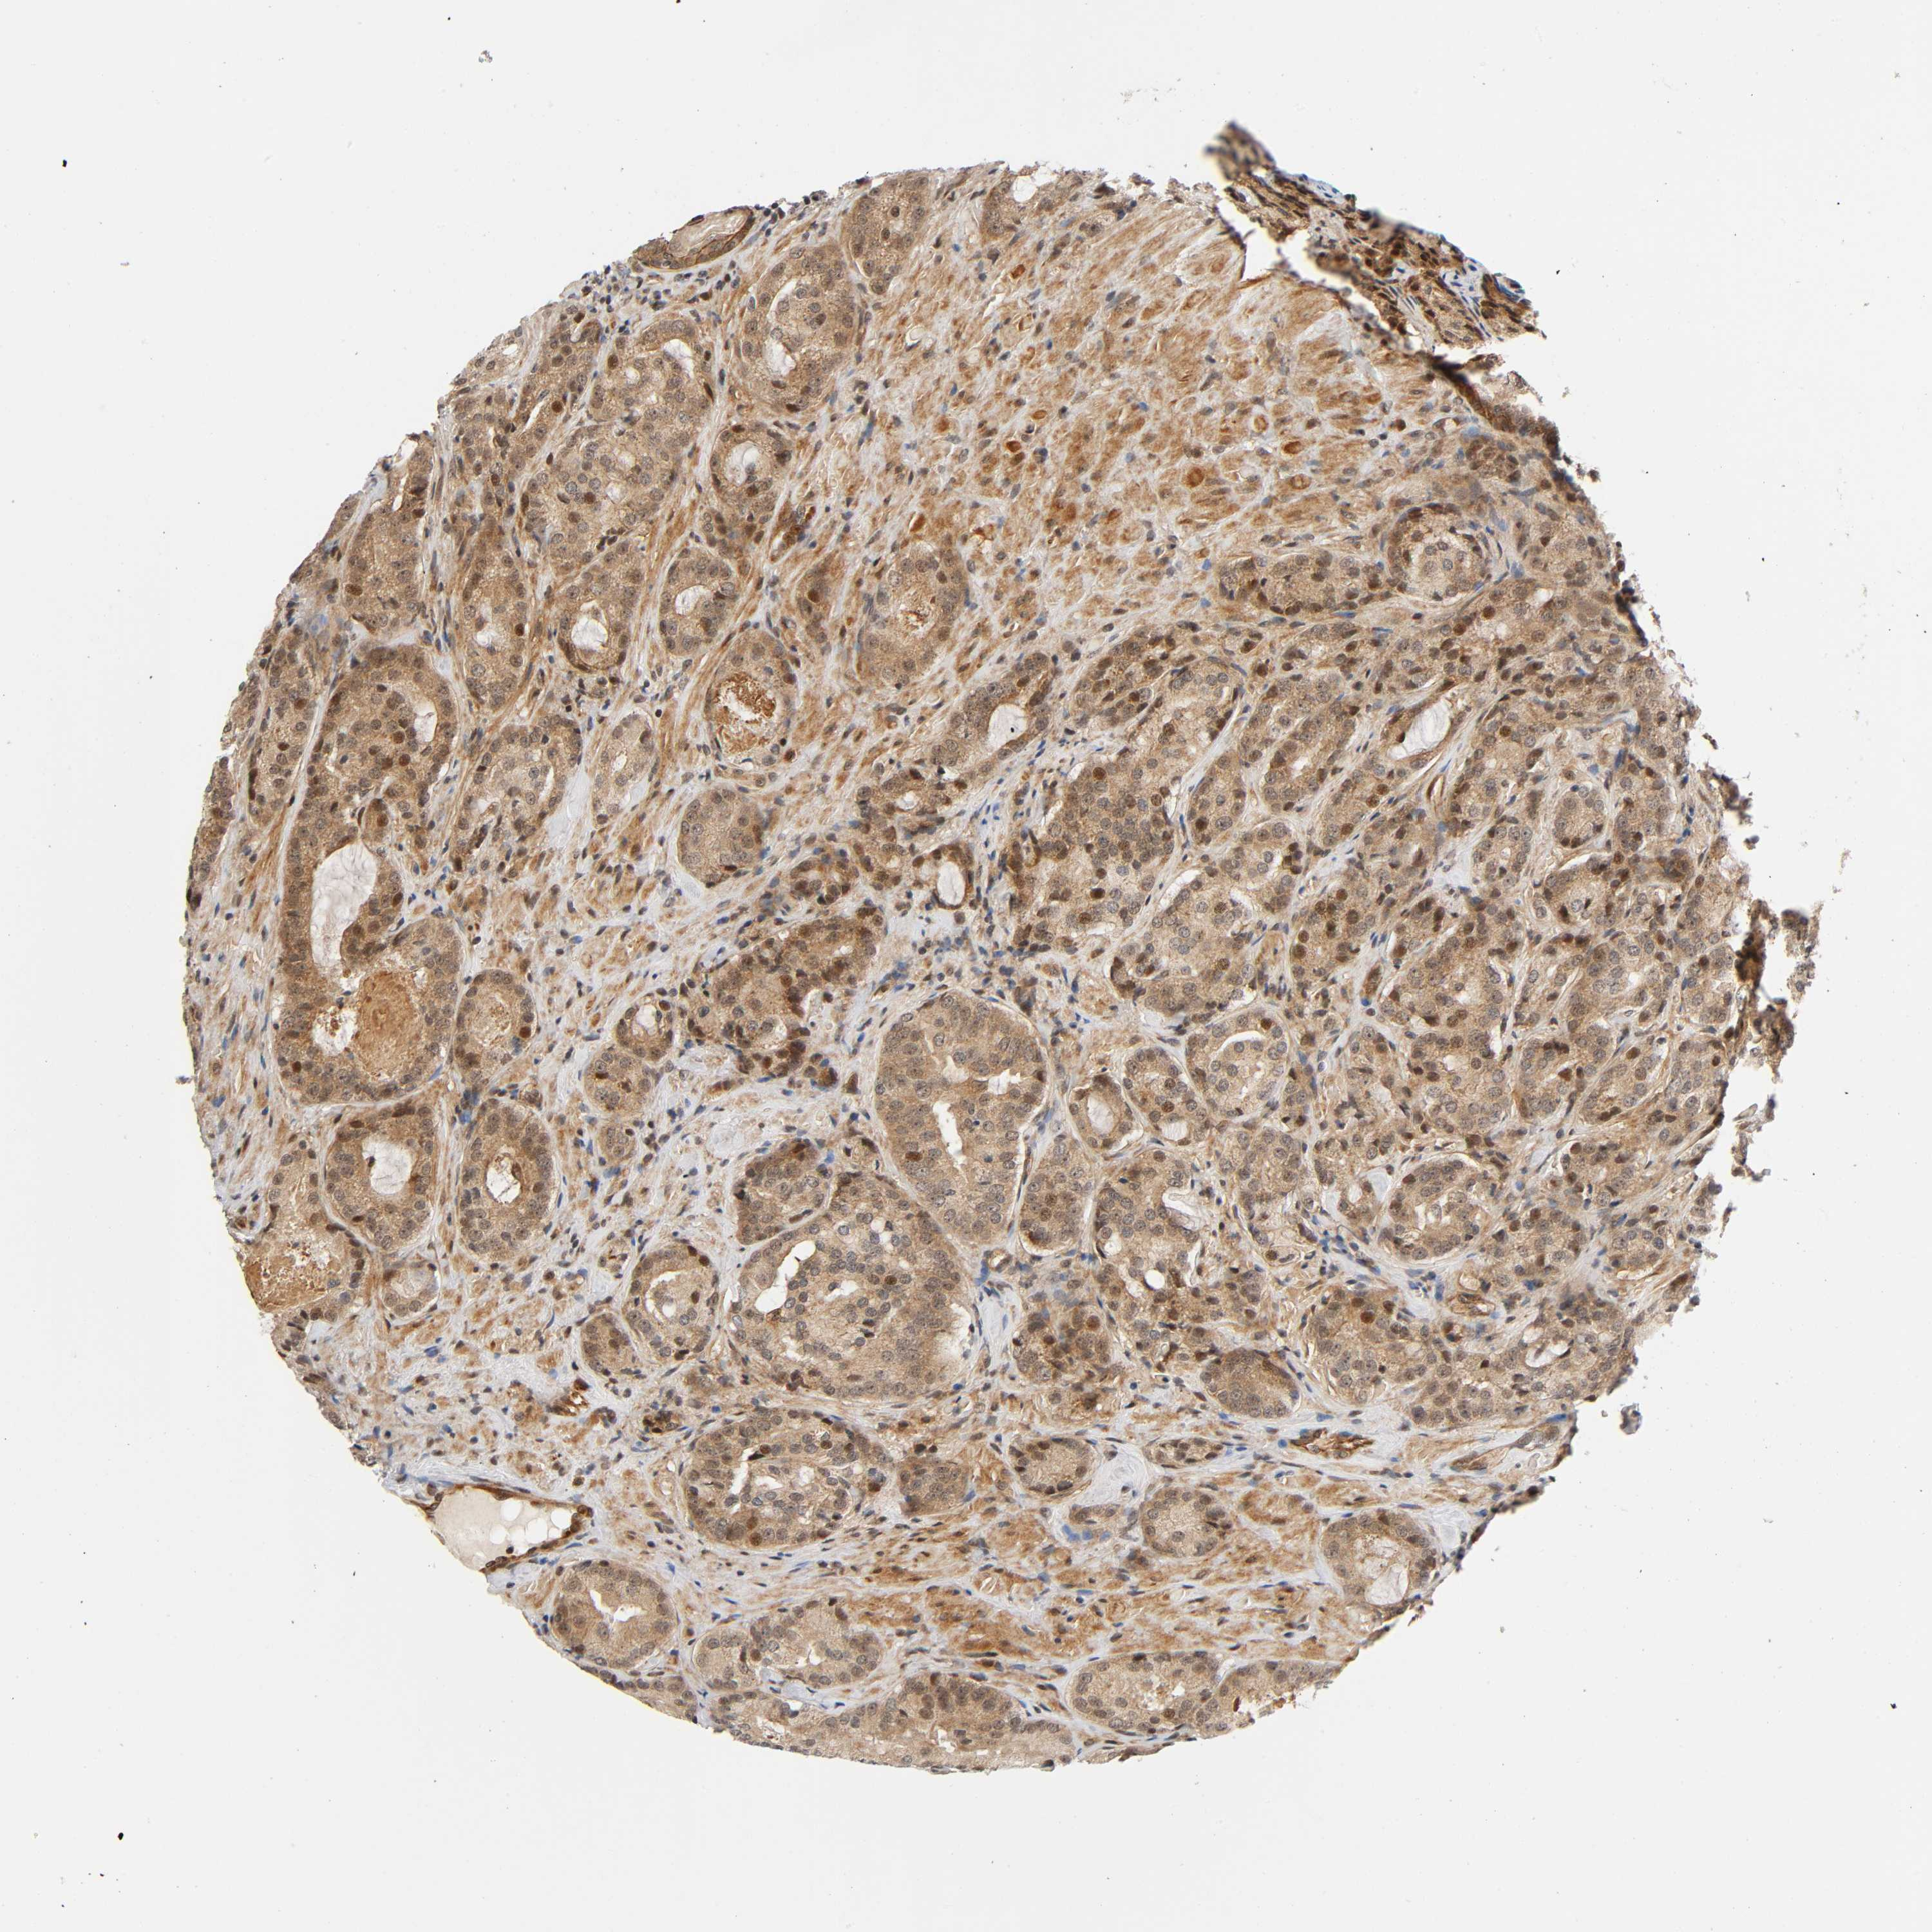 Expression Of Iqcj Schip1 In Prostate Cancer The Human Protein Atlas